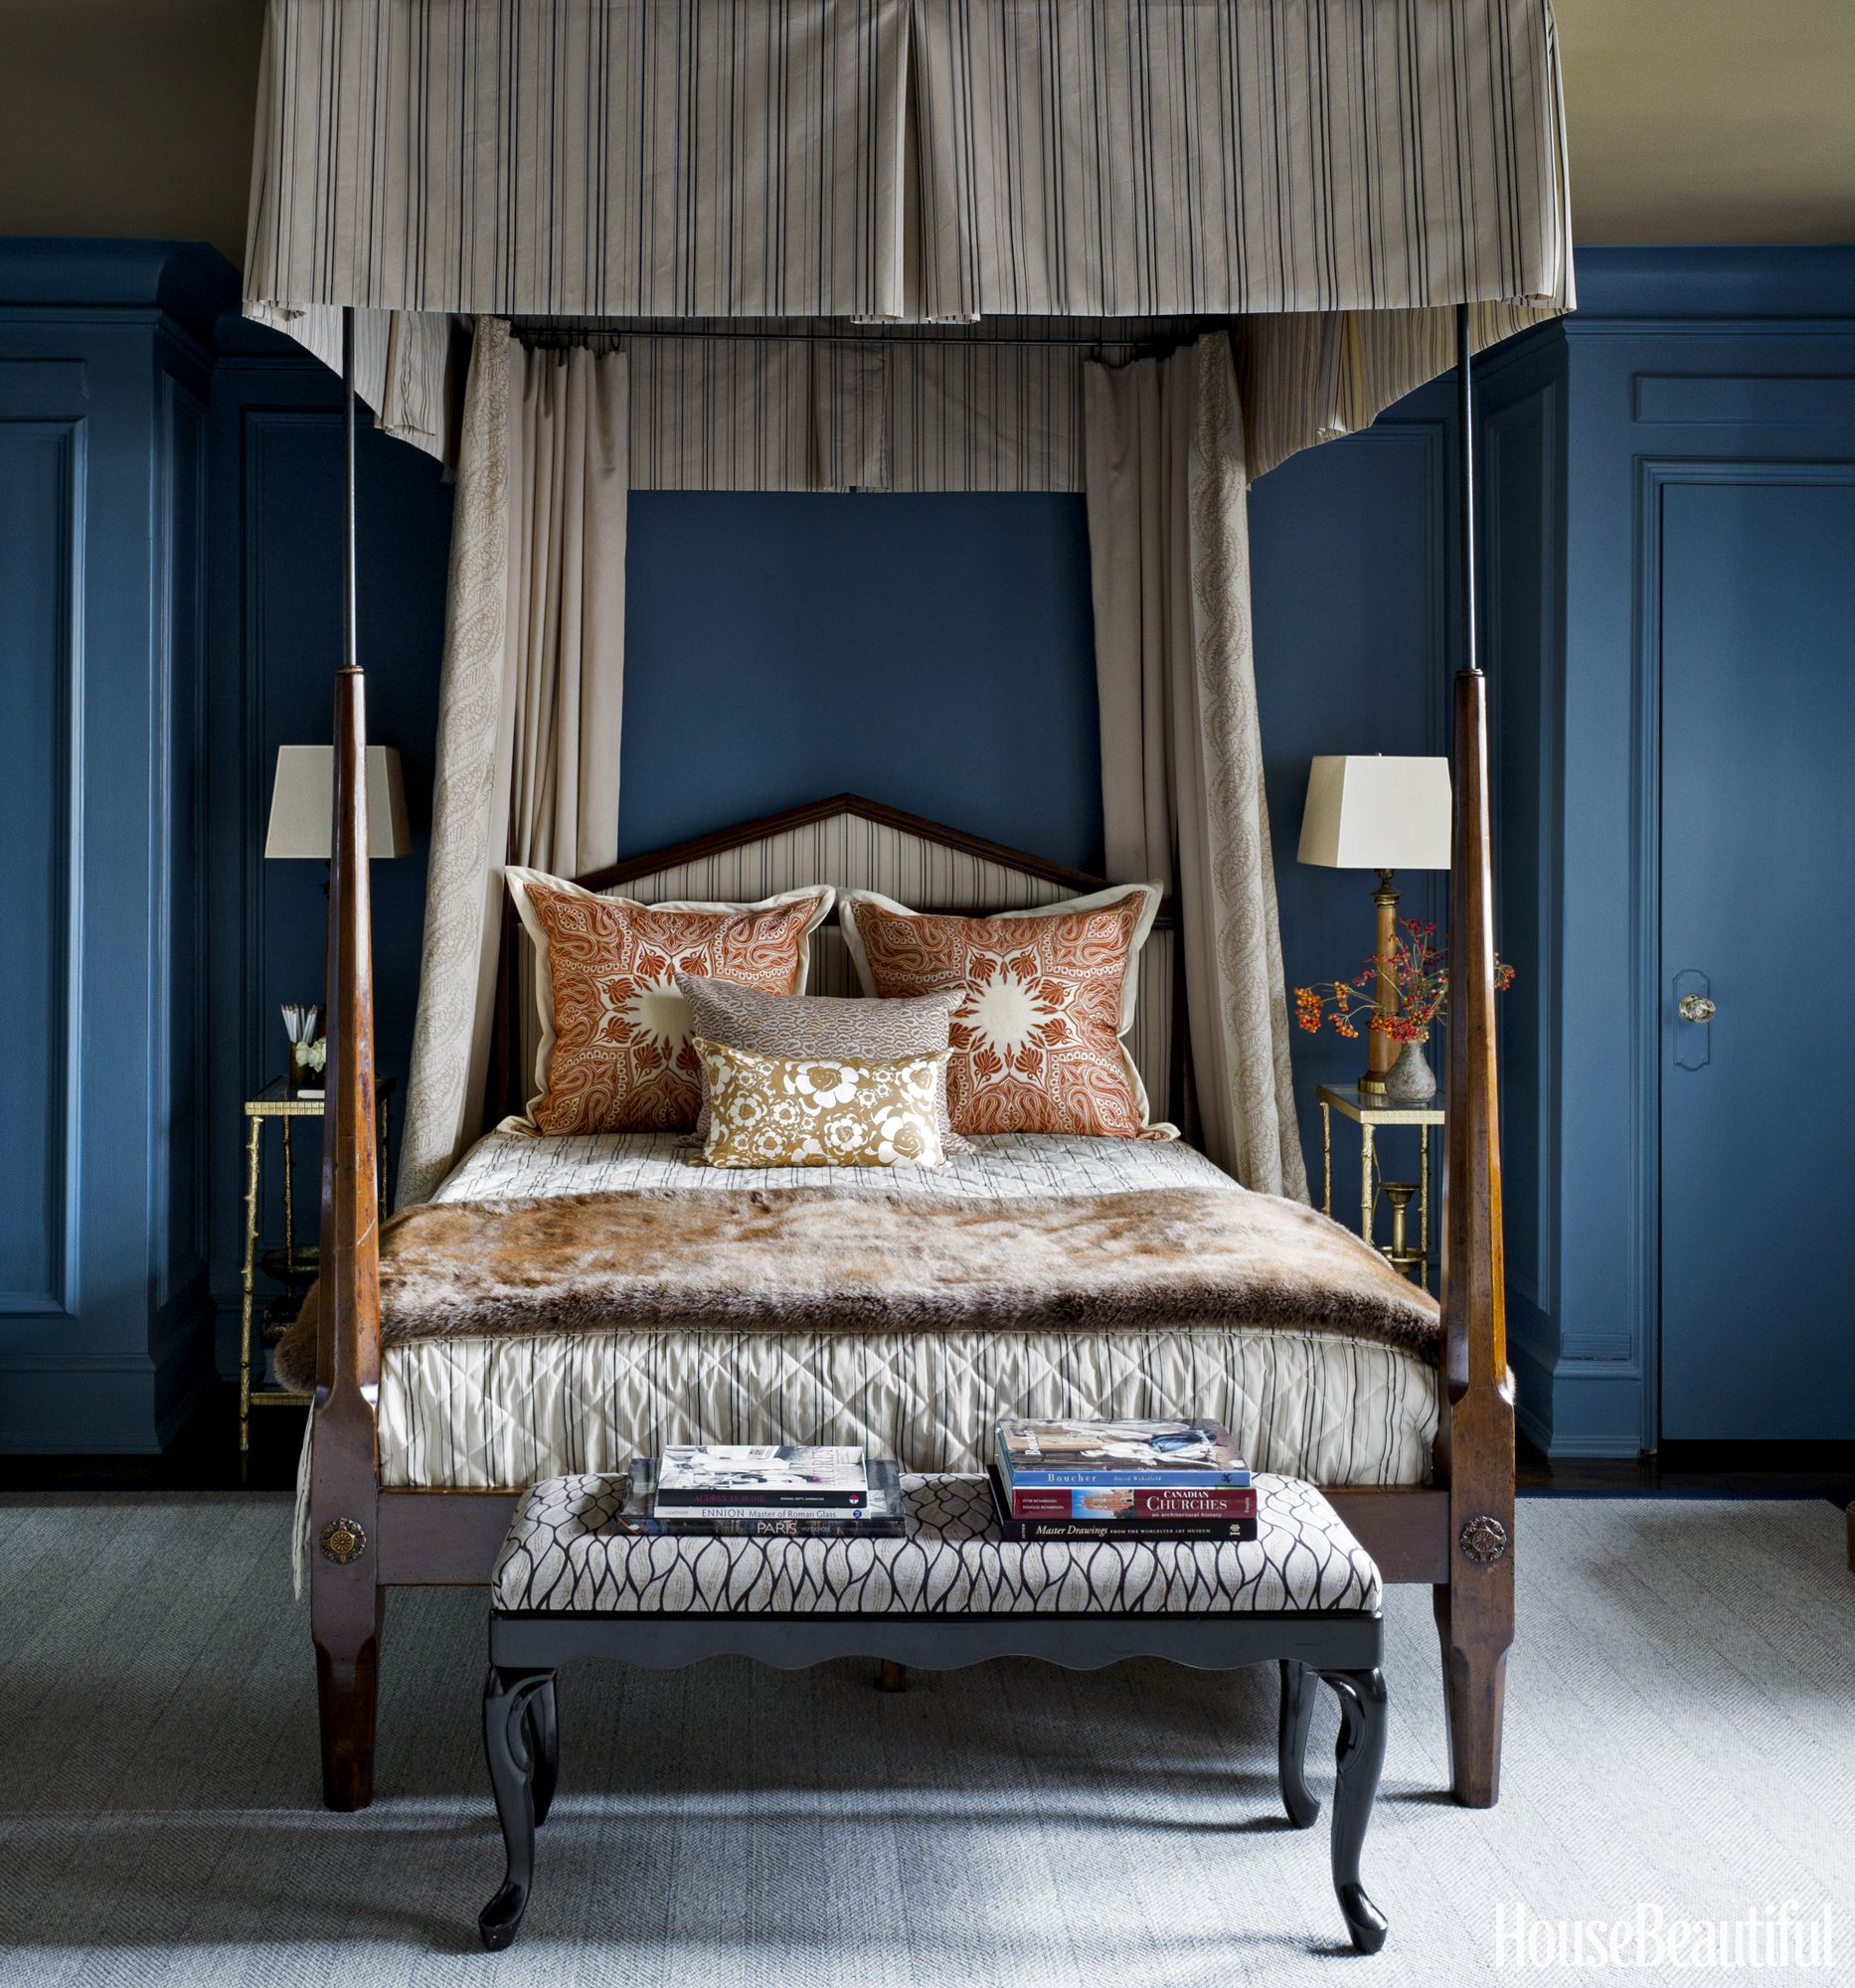 Bedroom Styles 175 Stylish Bedroom Decorating Ideas  Design Pictures Of